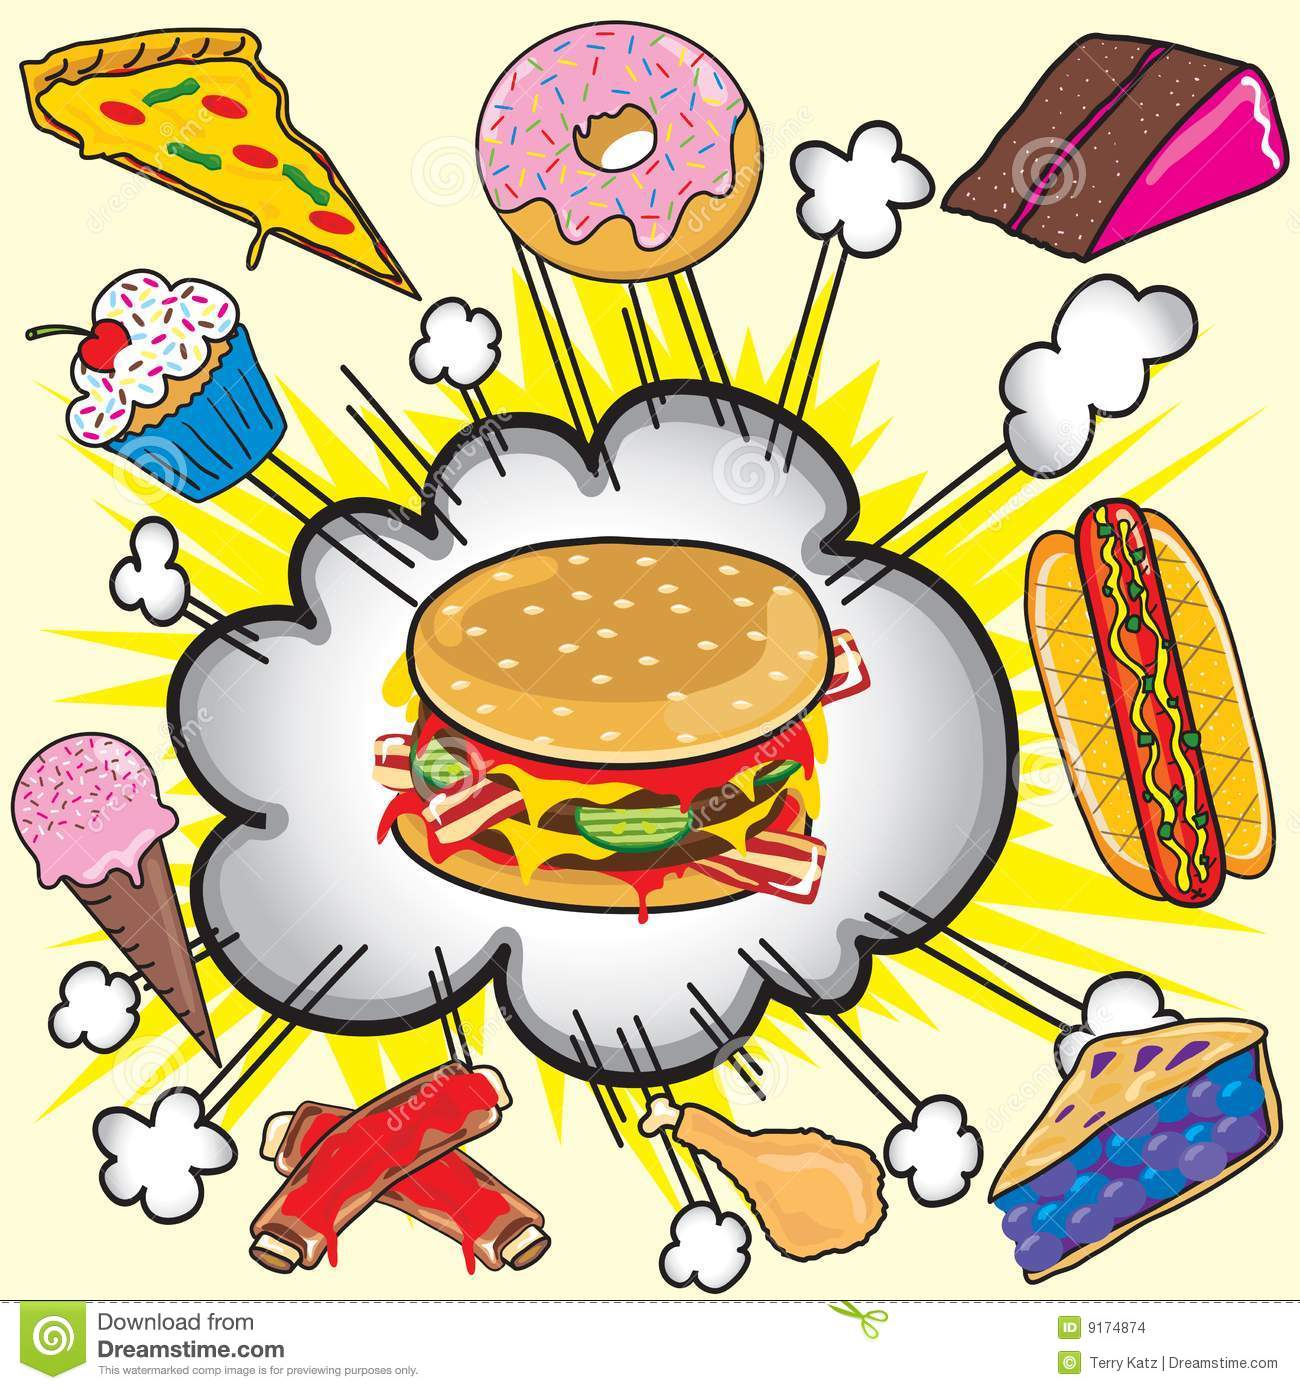 Cartoon hamburger fast food cartoon fast food cartoon cartoon pictures - Junk Food Explosion Stock Vector Image Of Burger Donut